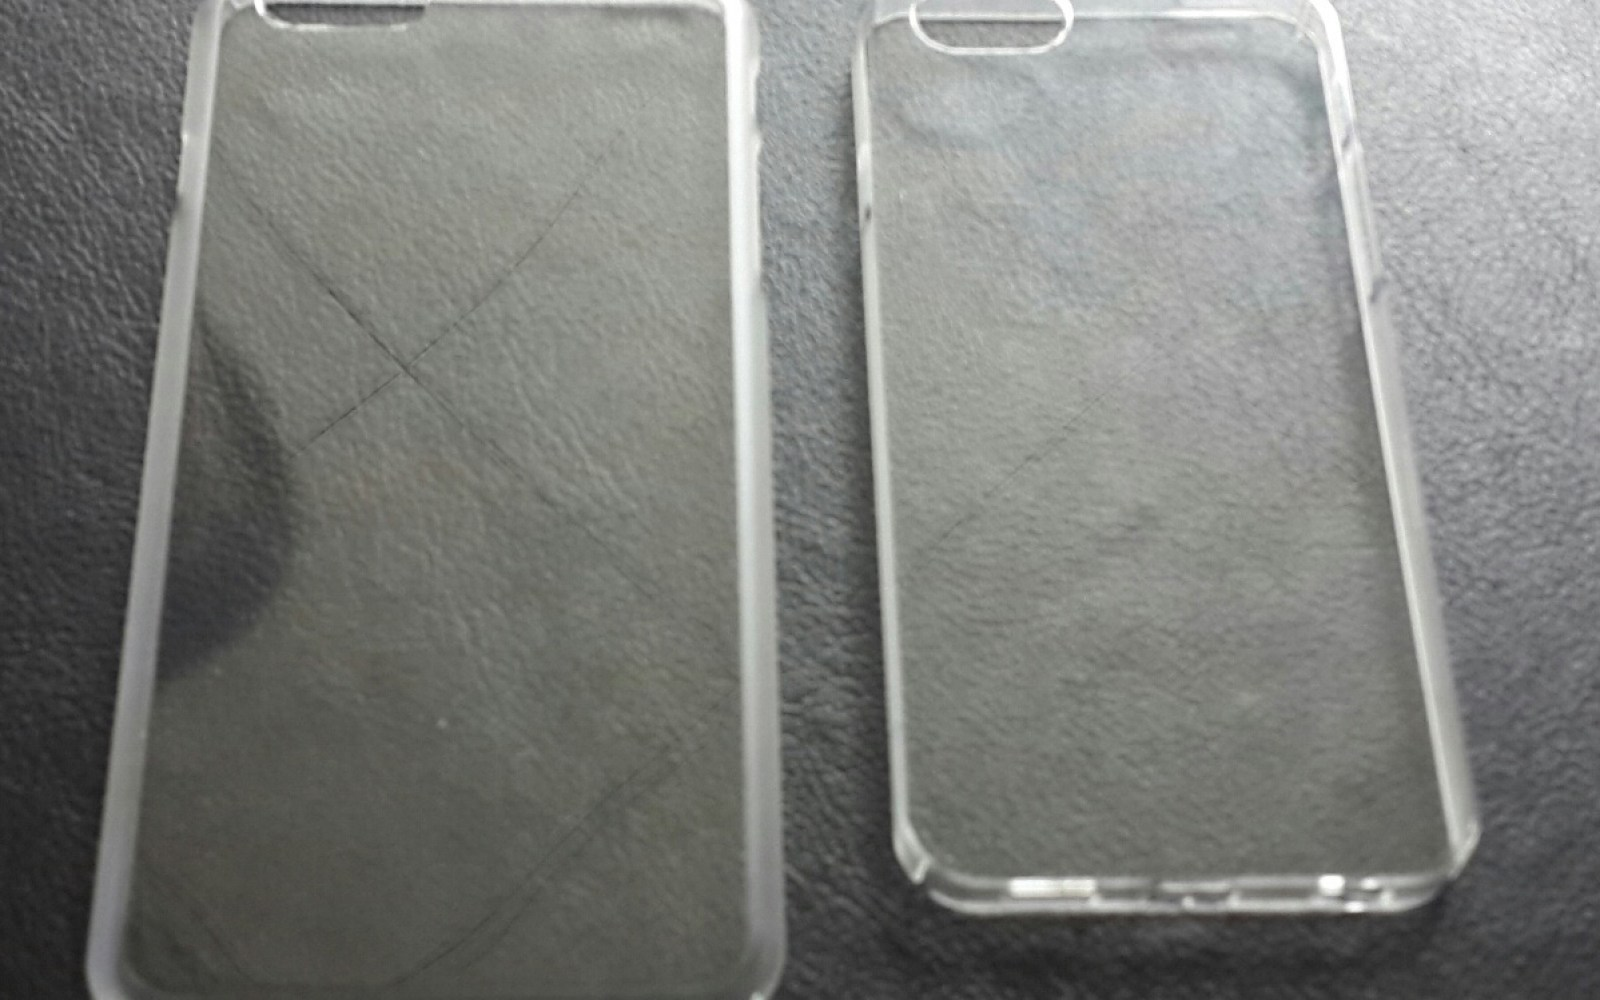 Dubious iPhone 6 cases already rolling in